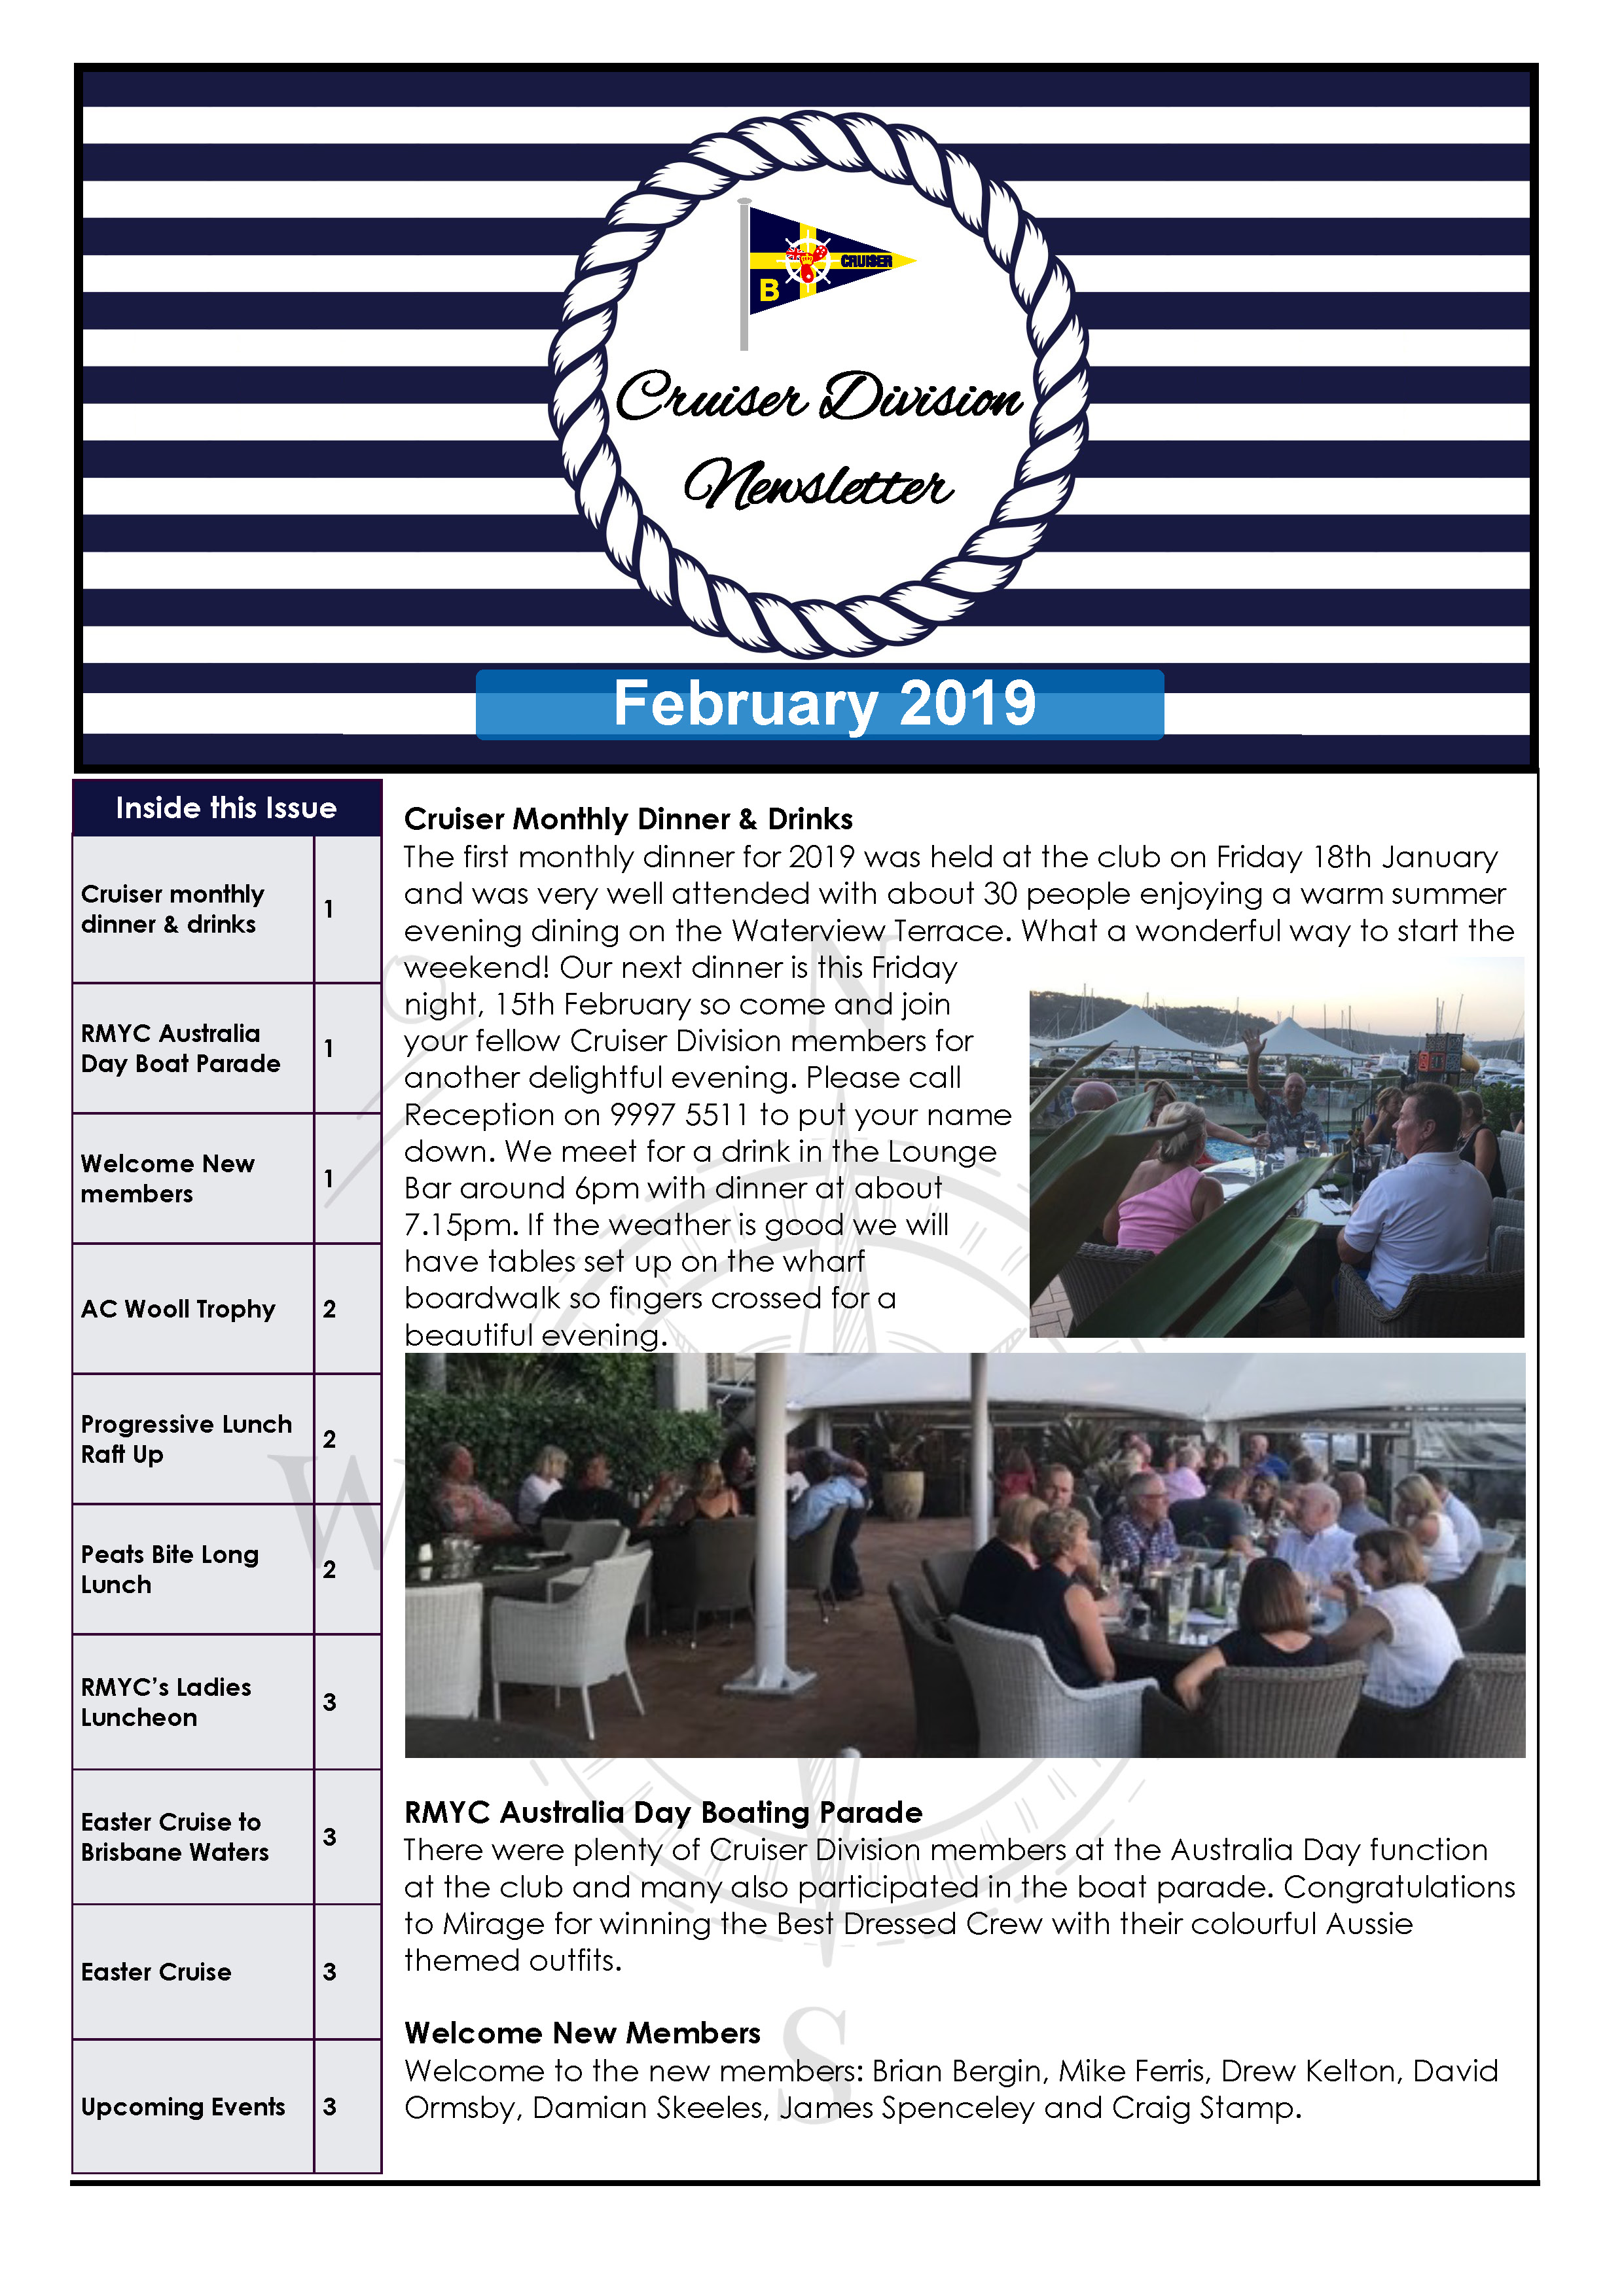 February 2019 NLL Page 1